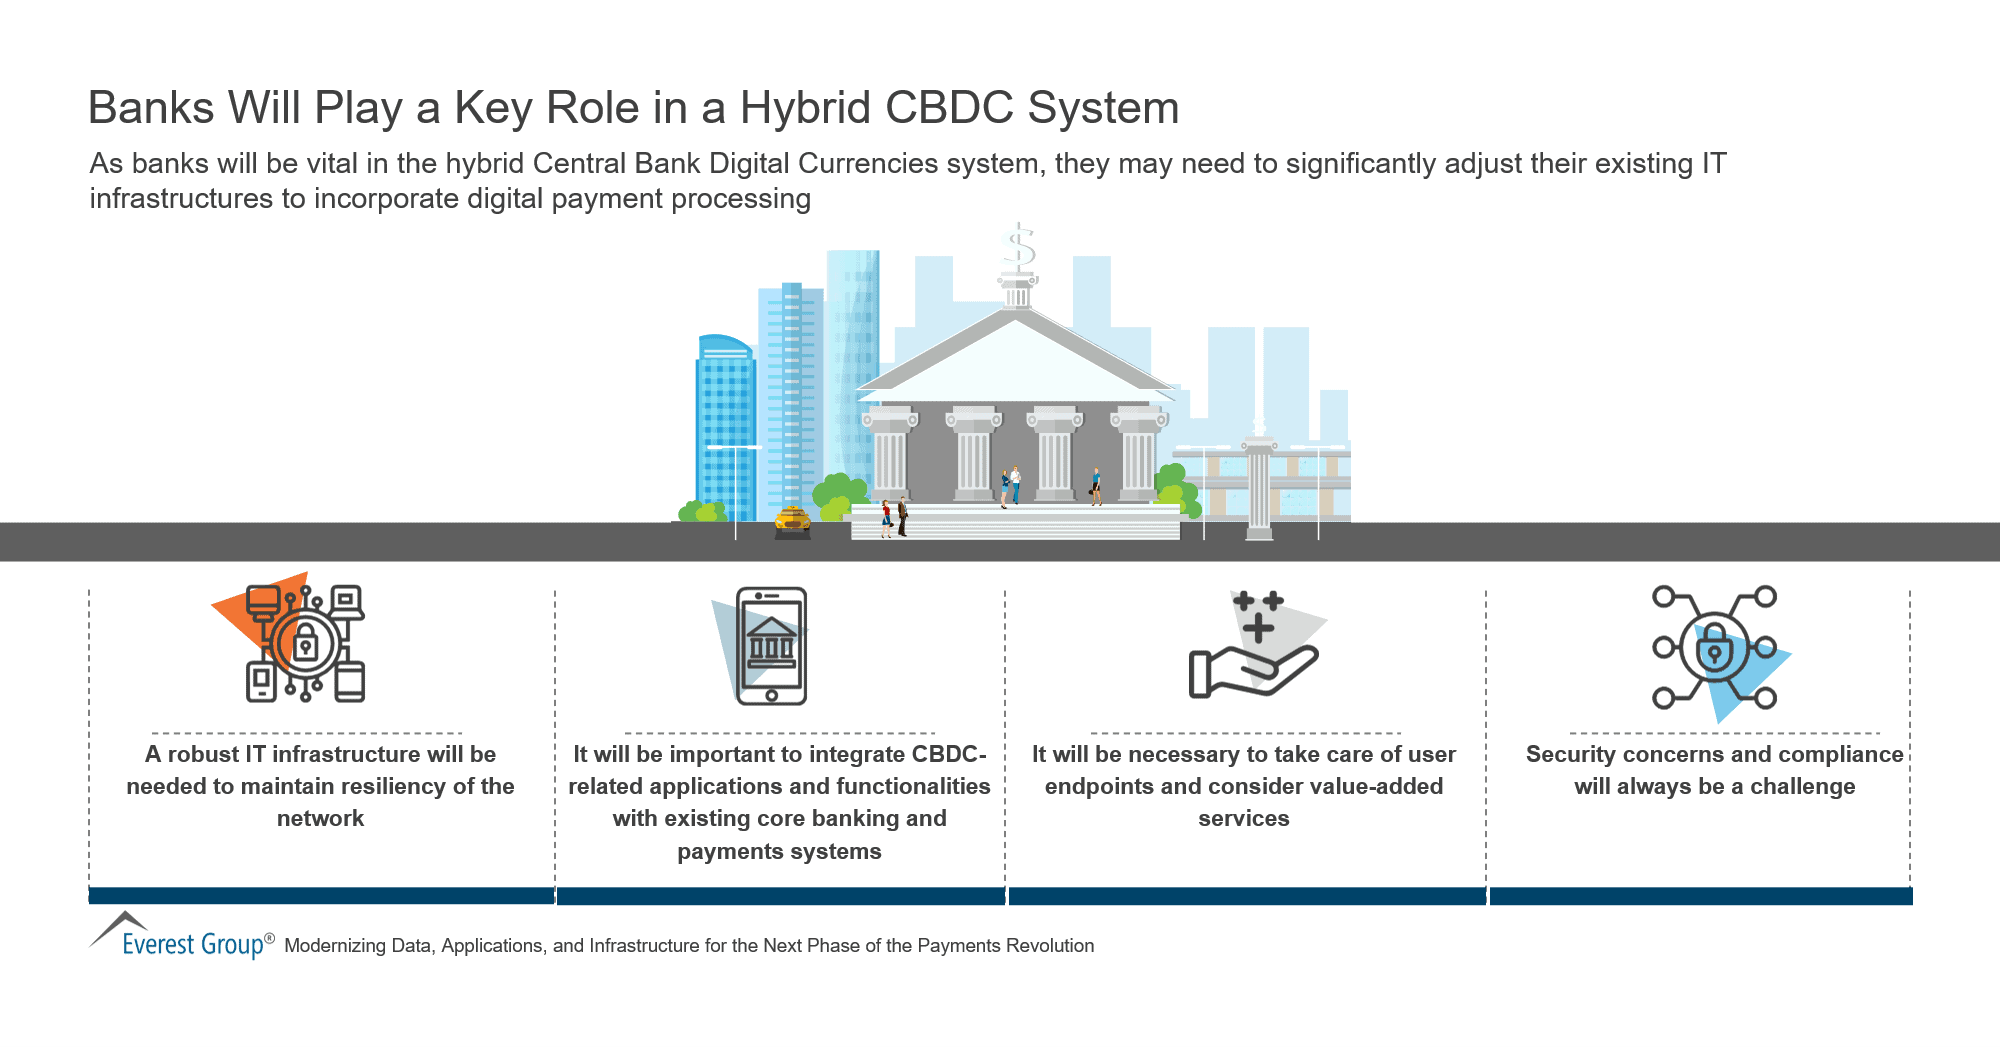 Banks Will Play a Key Role in a Hybrid CBDC System